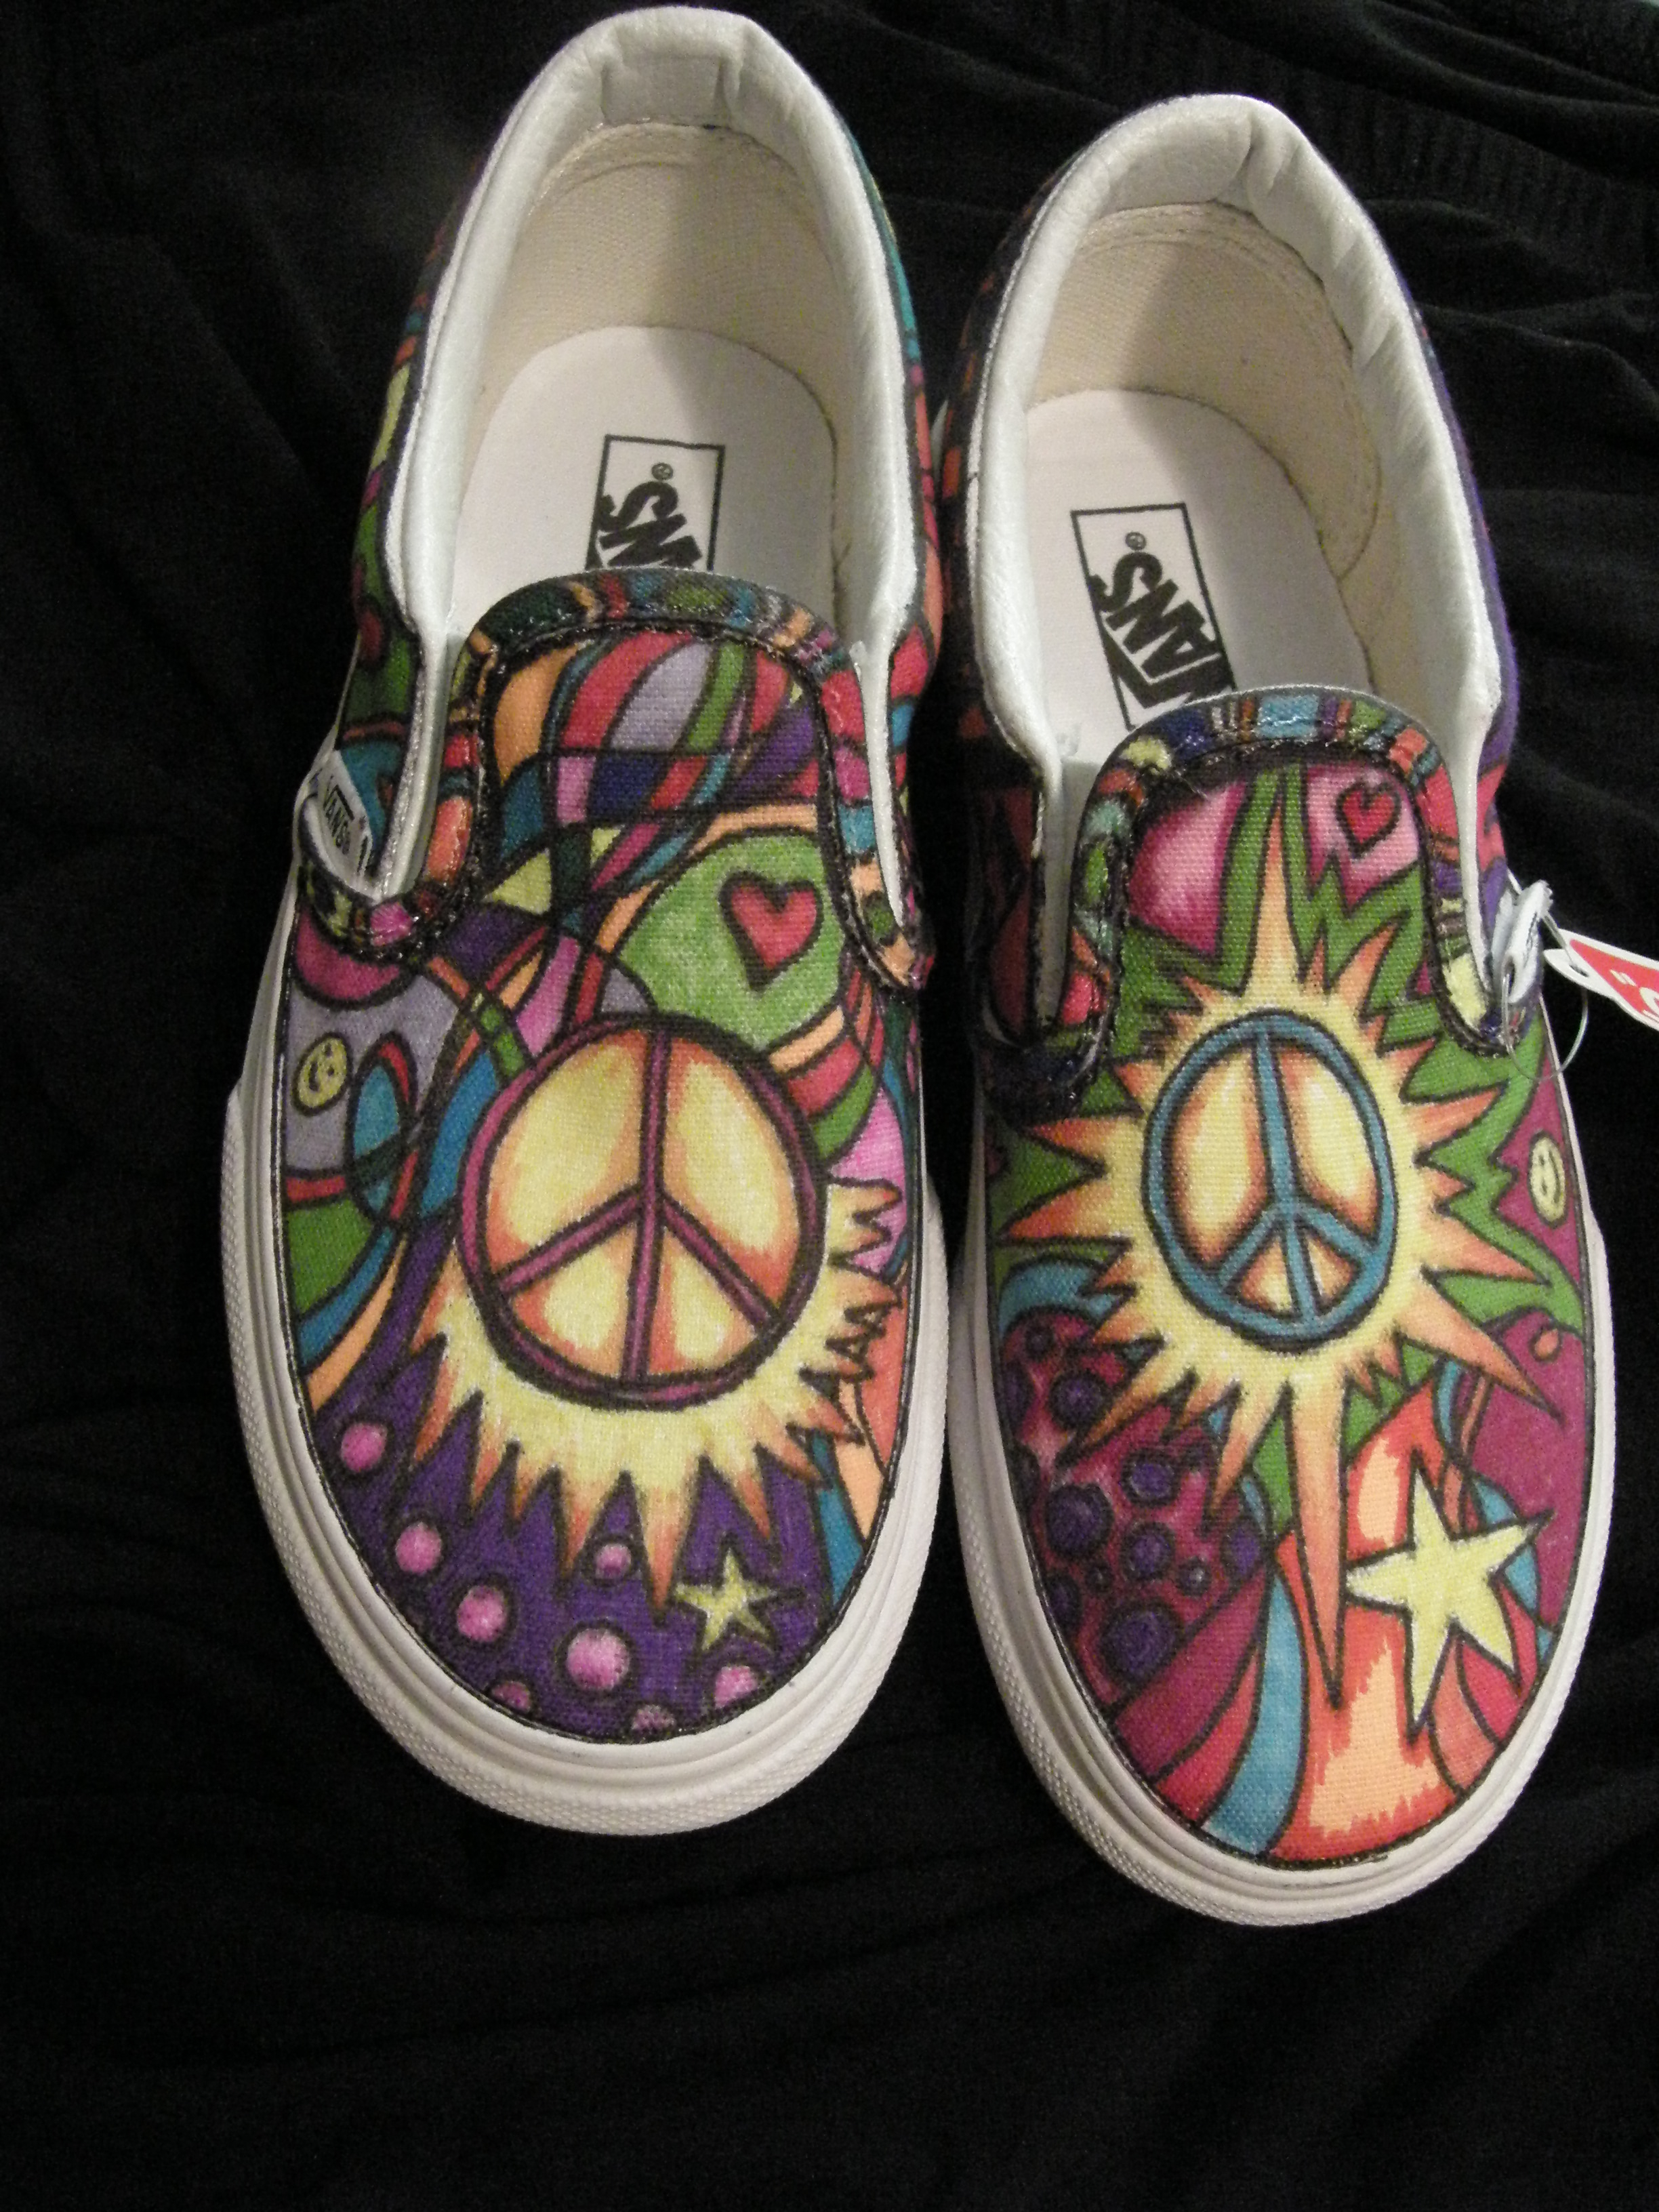 Drawn shoe van AND KEDS SHOES OF